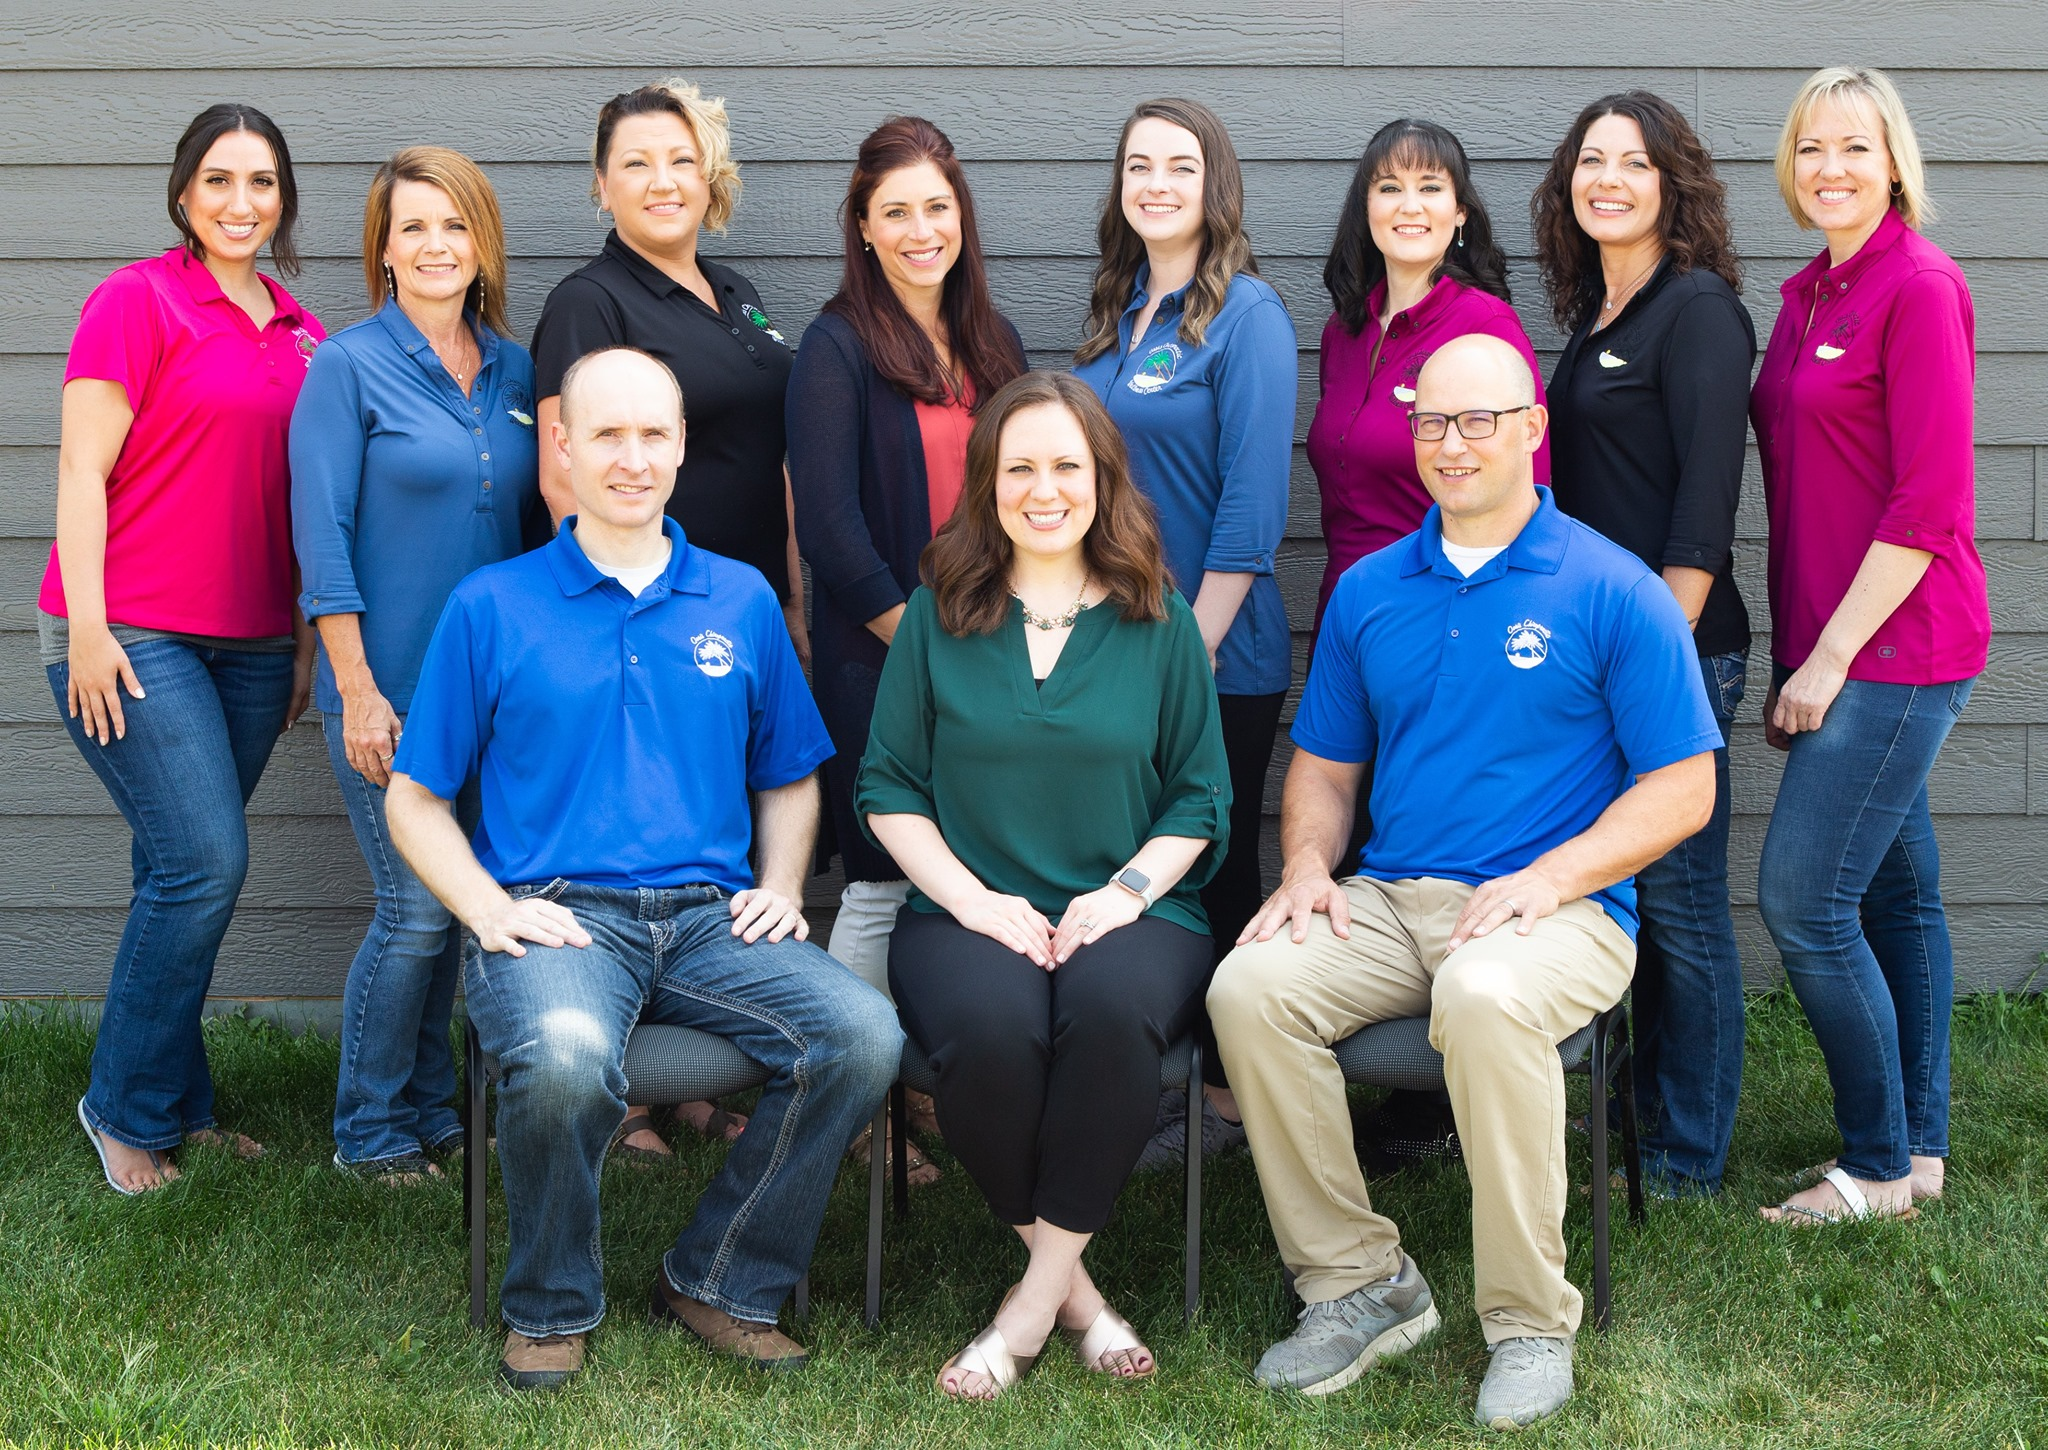 About-Oasis-Chiropractic-cottage-grove